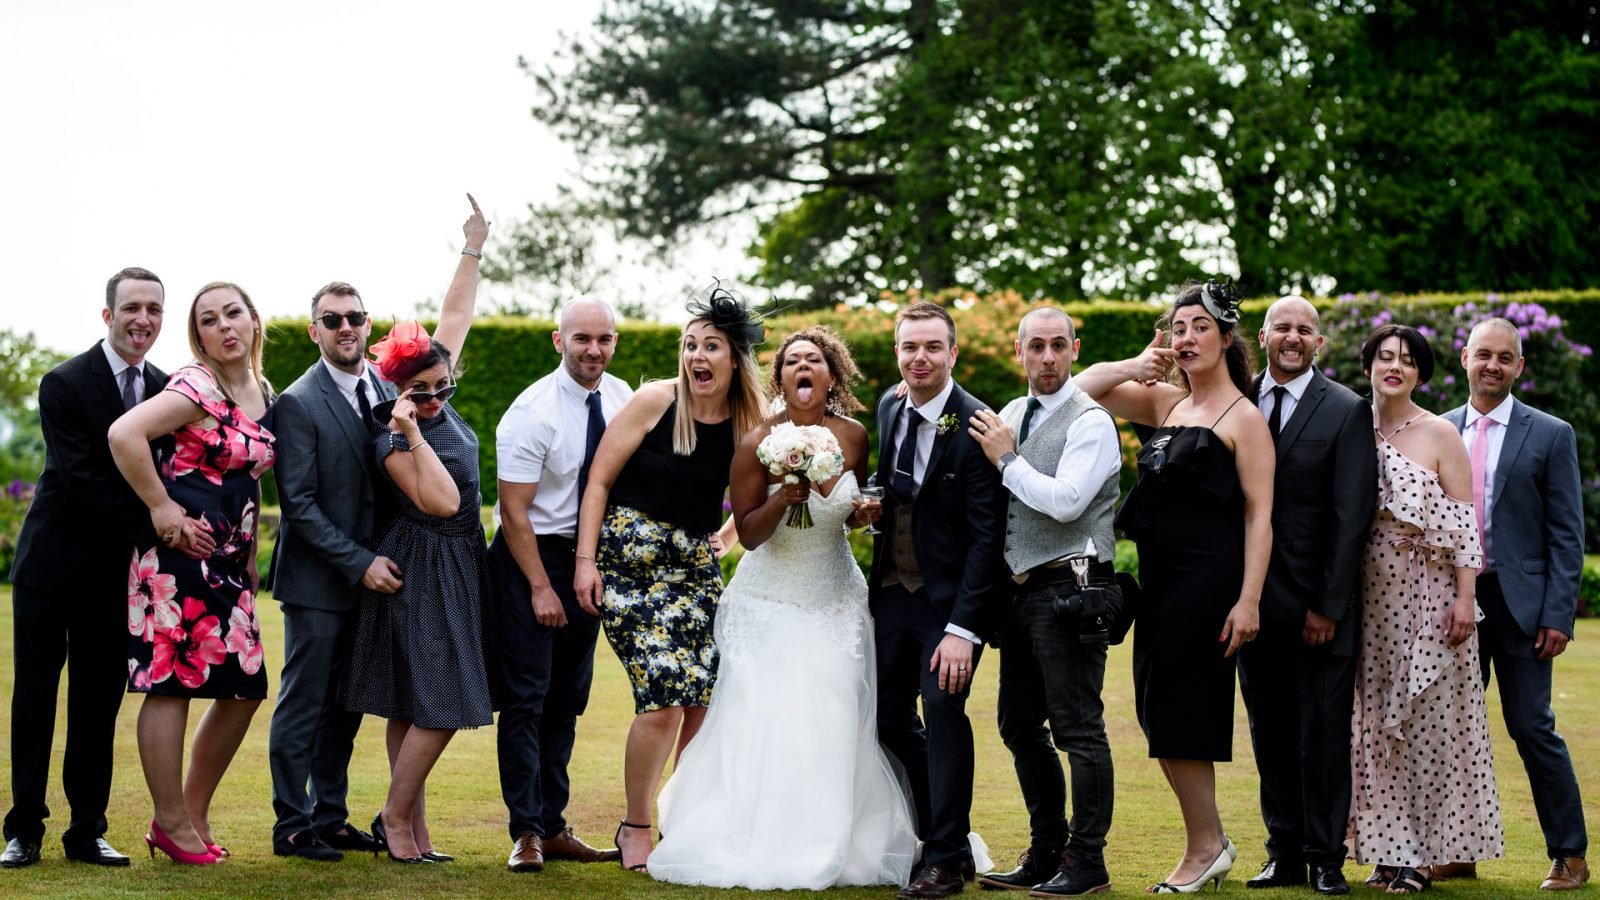 best-wedding-photos-2017-kimberley-and-joseph-posing-with-wedding-guests